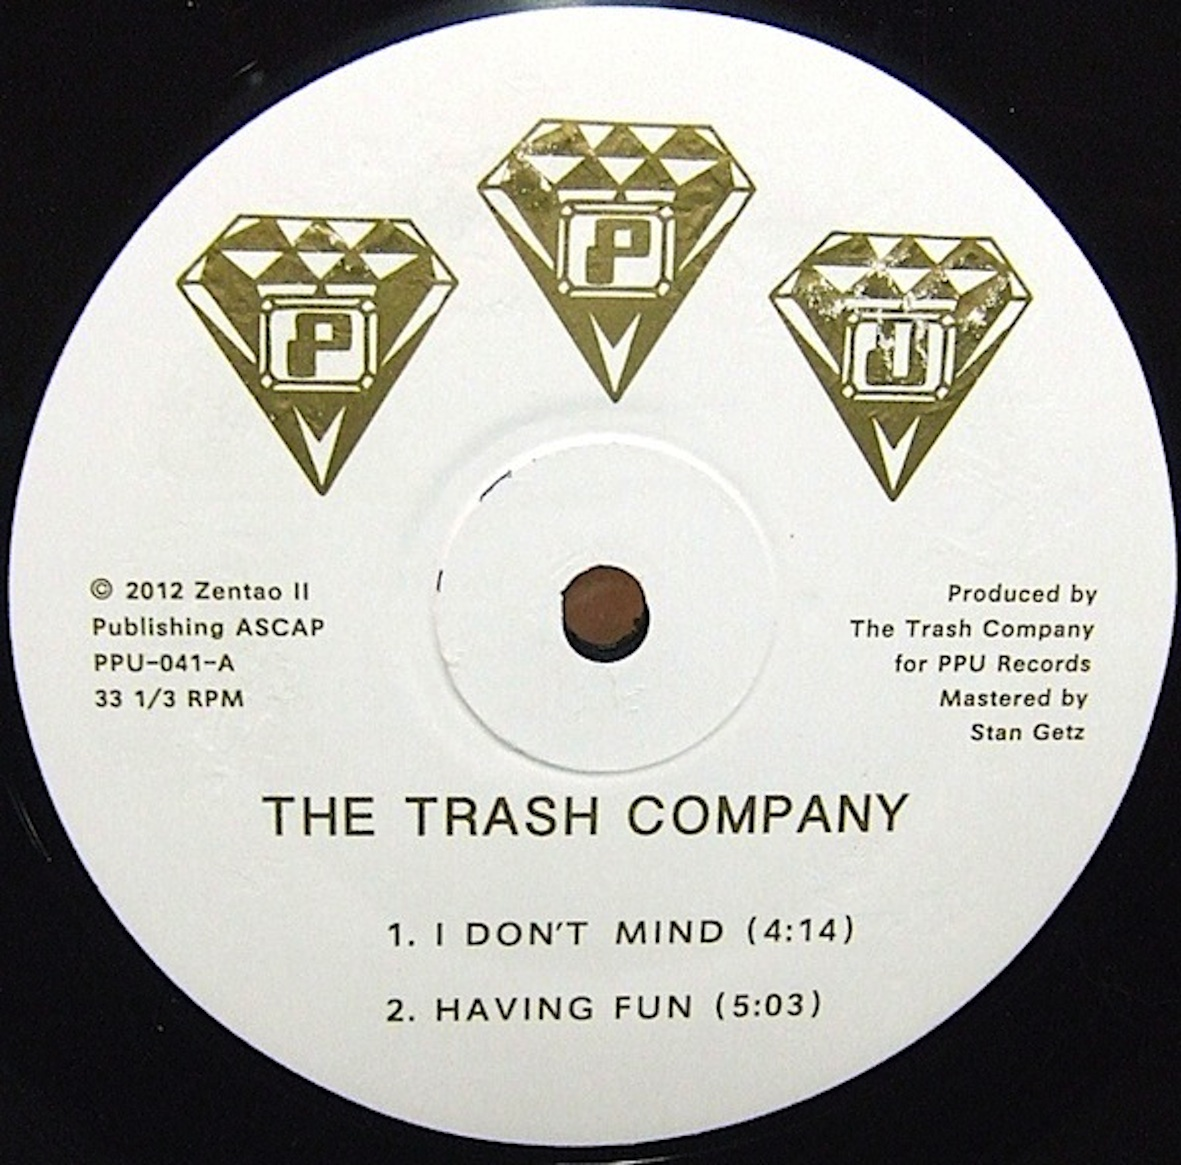 Reviews, Promo`d, Test Pressing, Dr Rob, Trash Company, Having Fun, People`s Potential Unlimited